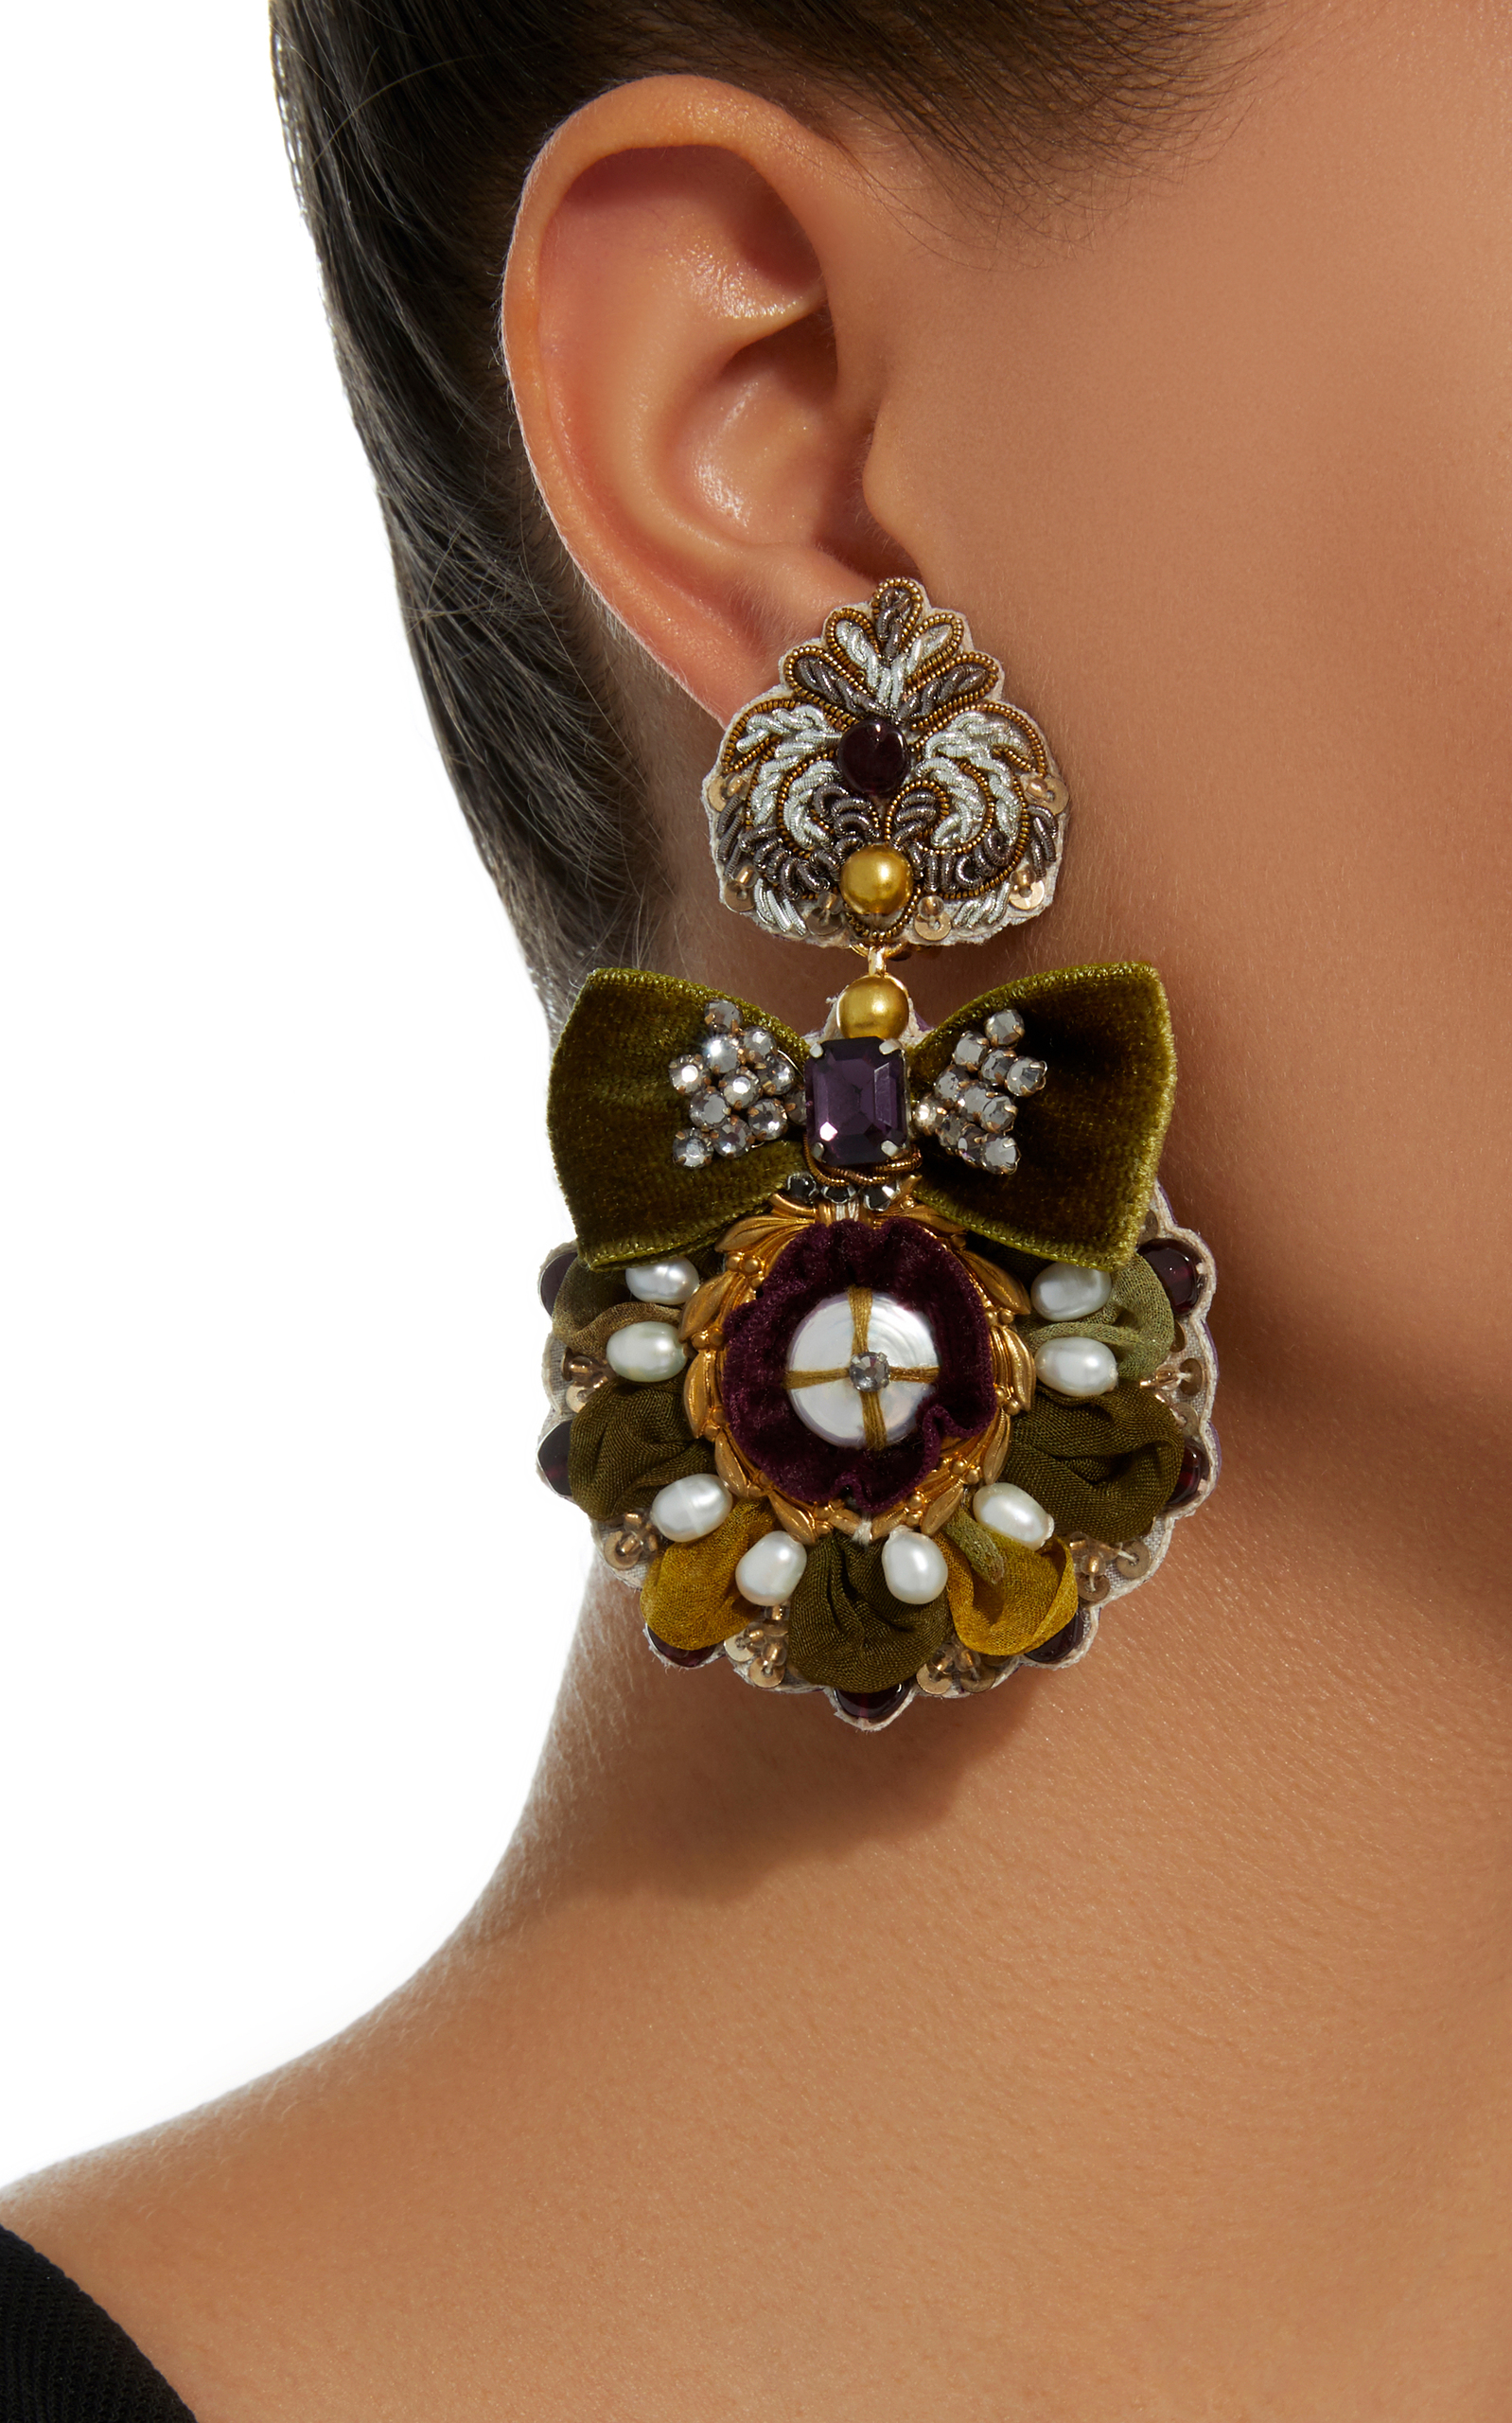 14K Gold-Plated Mother of Pearl and Crystal Earrings Ranjana Khan iDNt7pmNKY